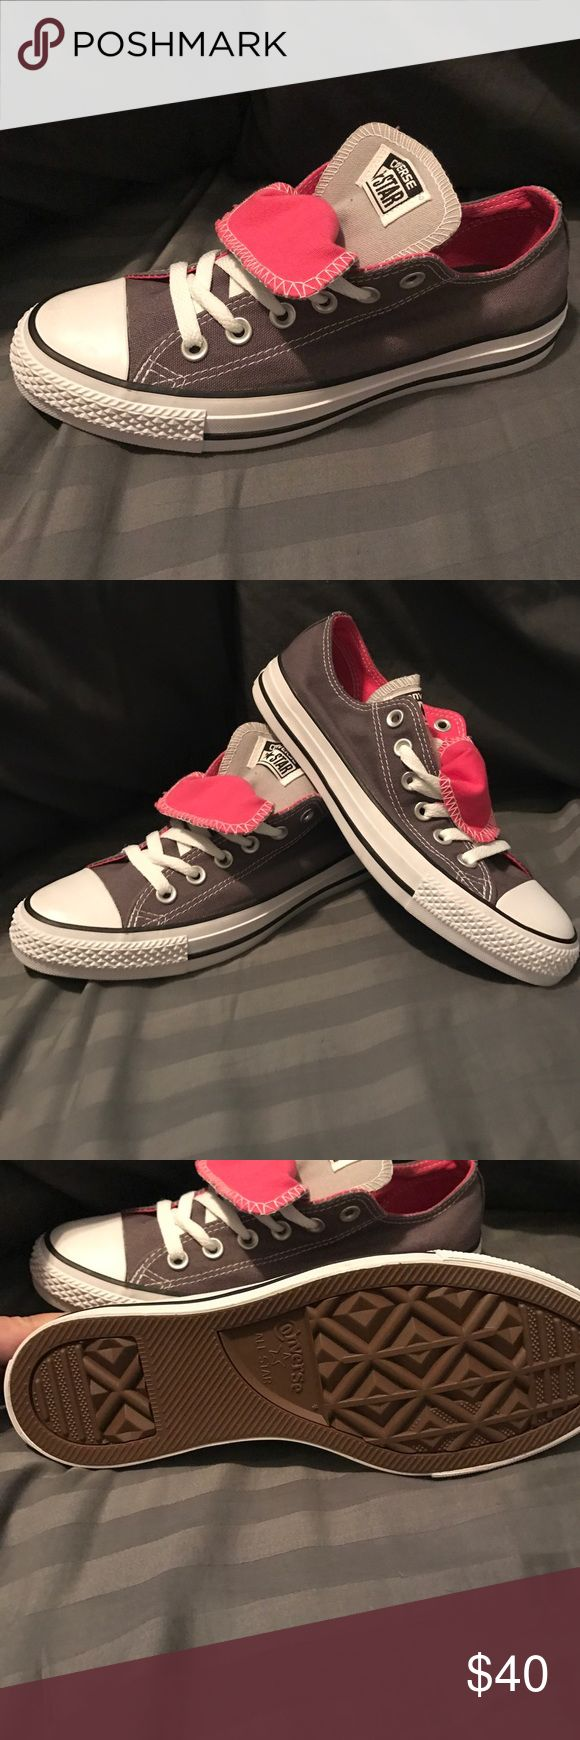 Women's Converse double tongue size 7 - Sample Women's Converse double tongue size 7 - Sample brand new please see pictures Converse Shoes Athletic Shoes